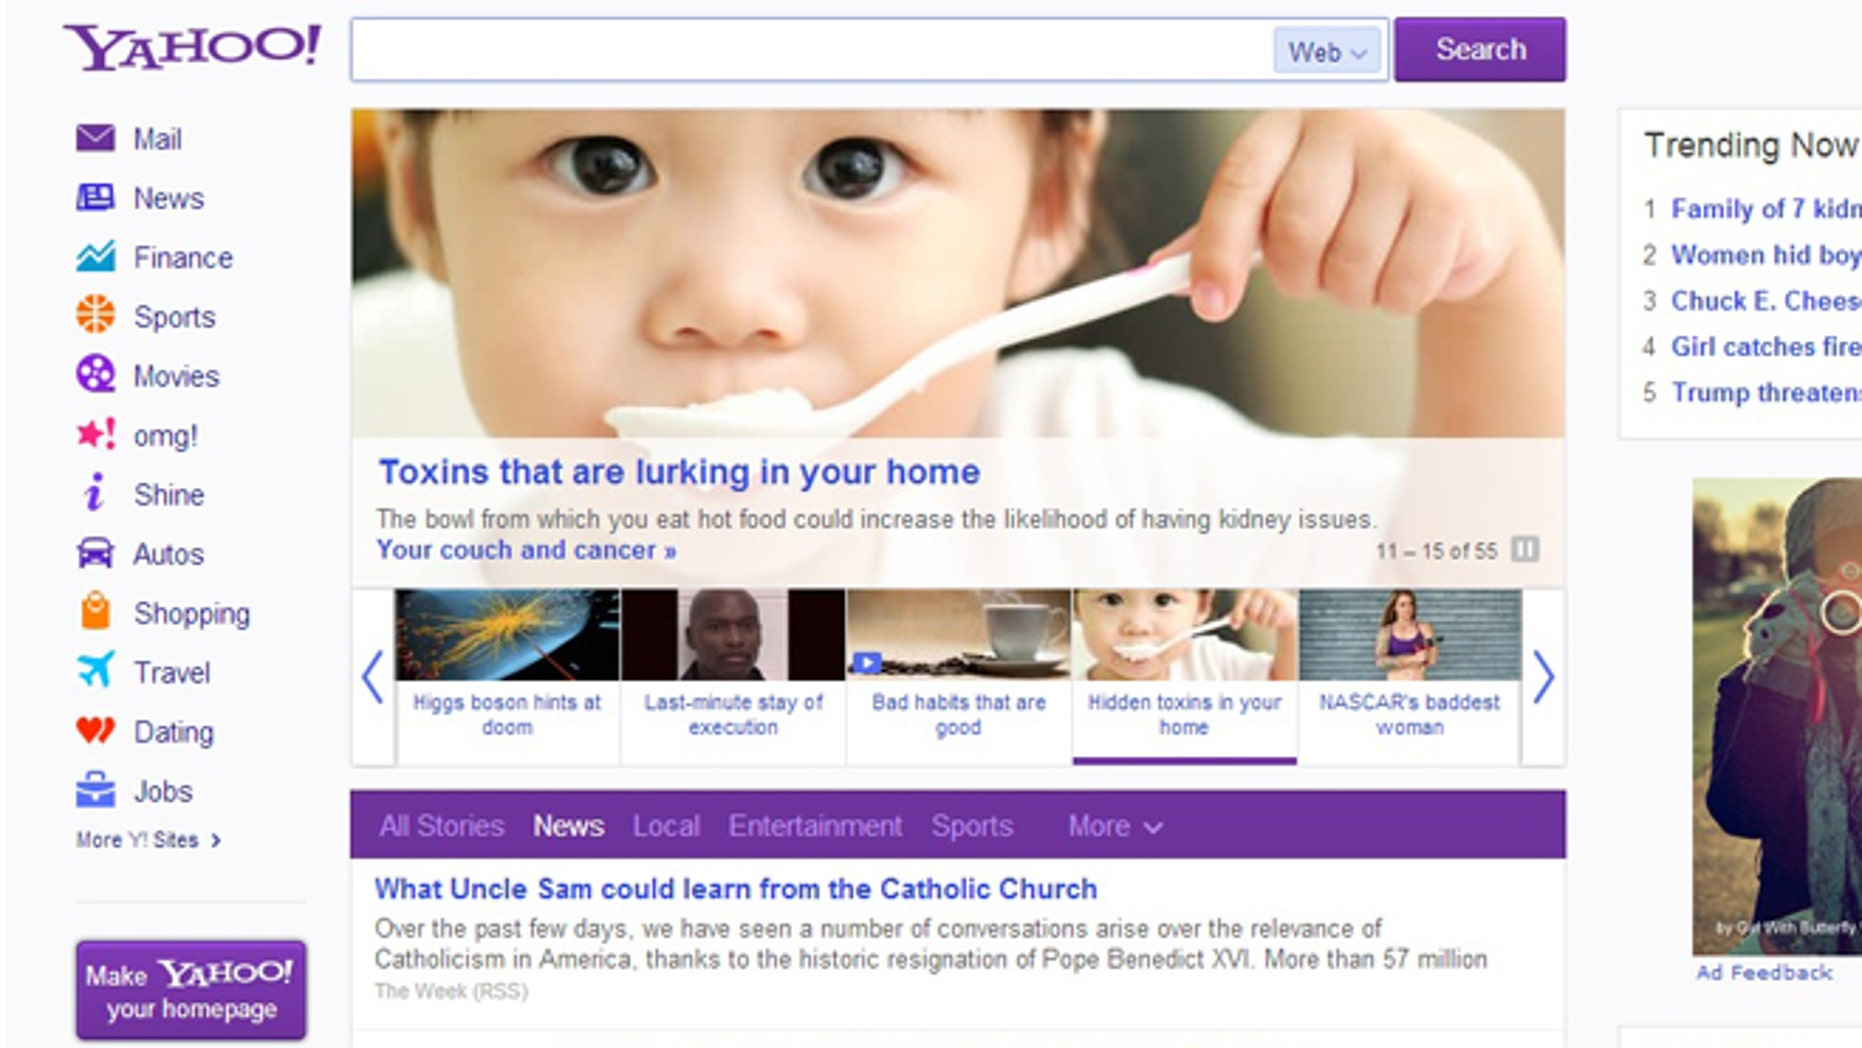 Feb. 20,2013: The first revamp to the Yahoo homepage in years features a scrolling, never-ending news roll, redesigned apps, and deeper integration with Facebook.